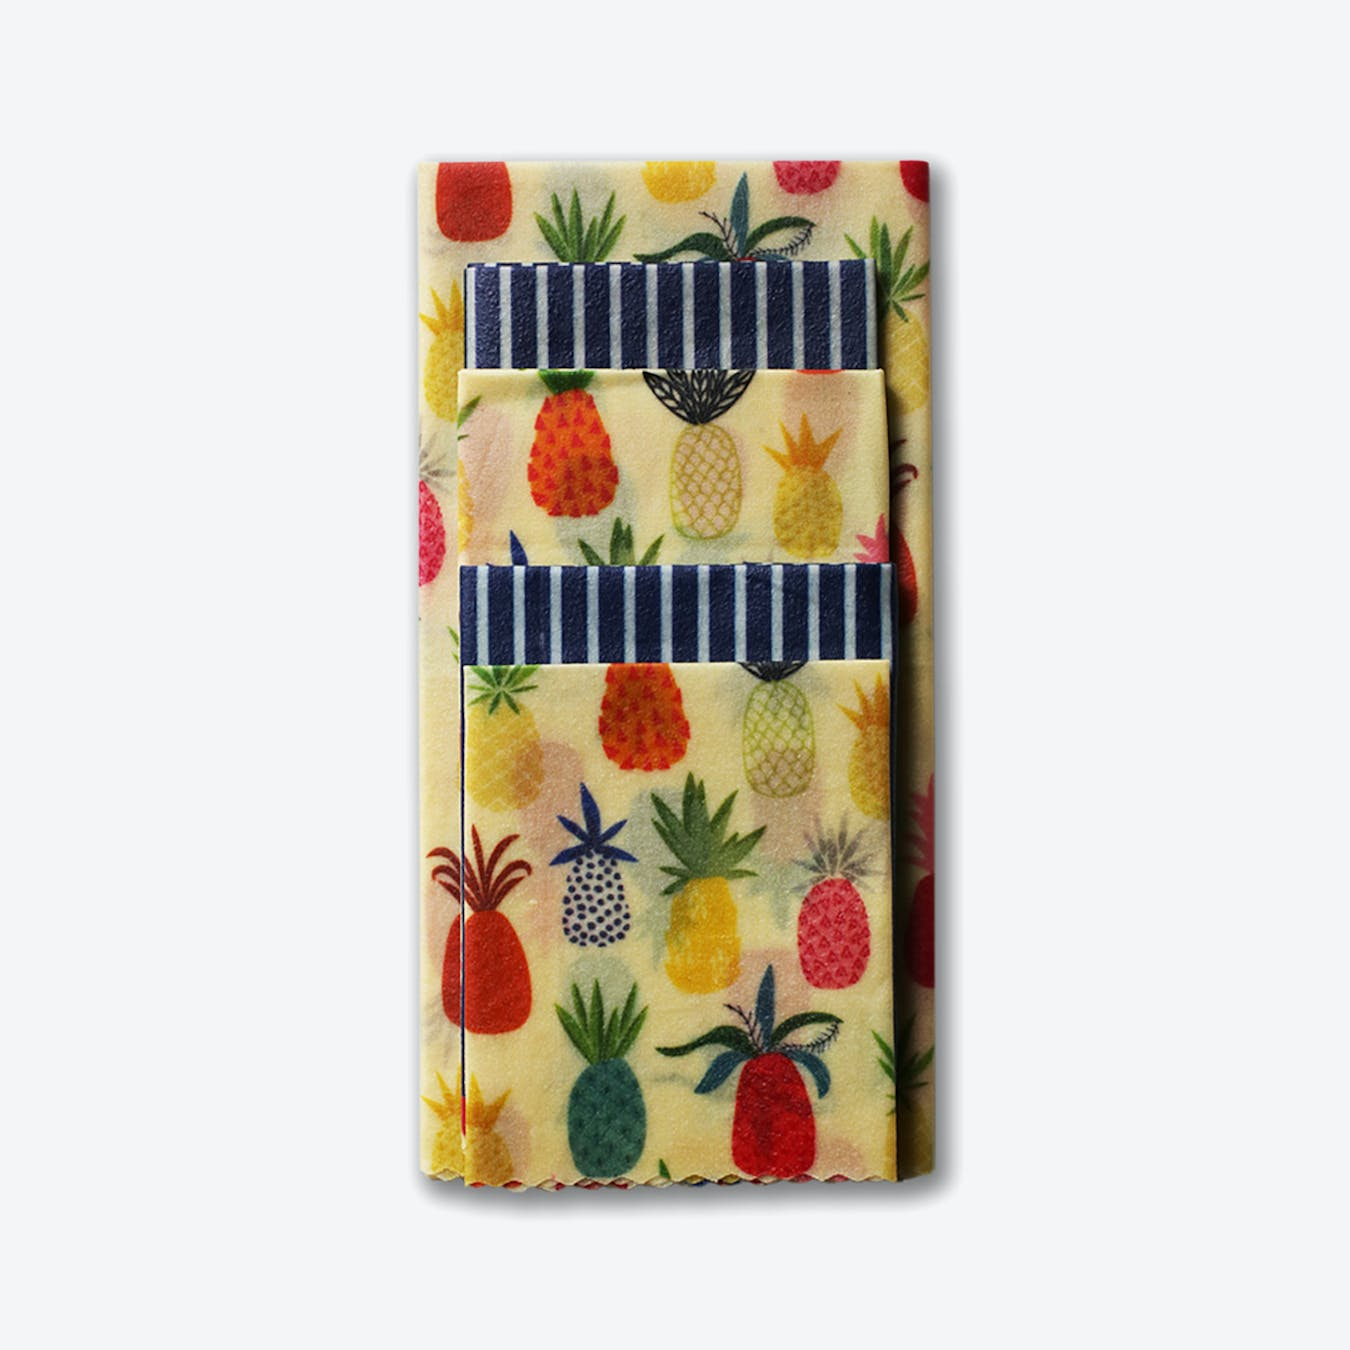 Pineapple Kitchen Pack - Large